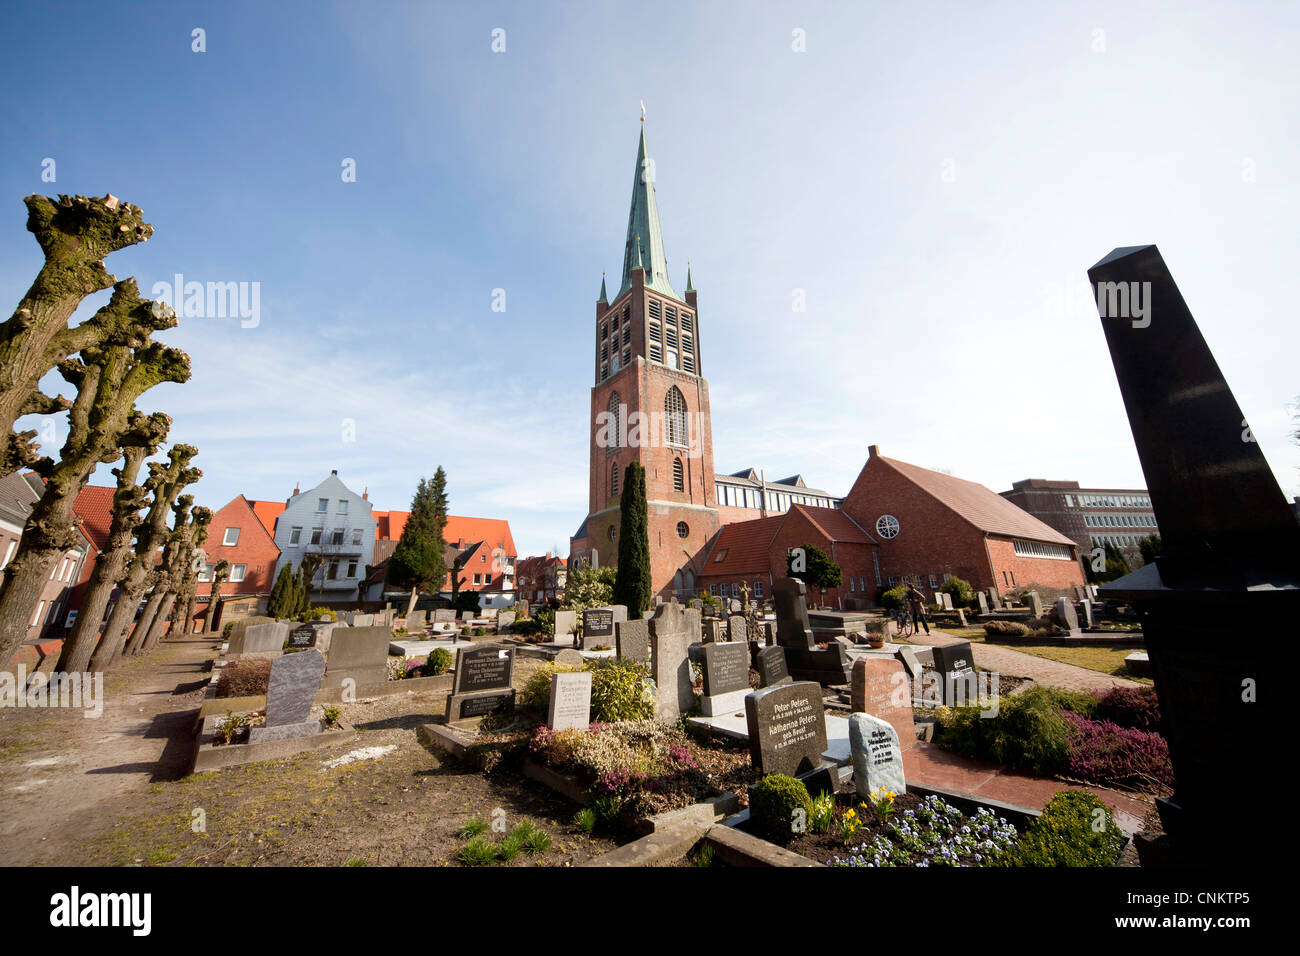 Evangelical Reformed Church Grosse Kirche and Cemetery in Emden, East Frisia, Lower Saxony, Germany Stock Photo